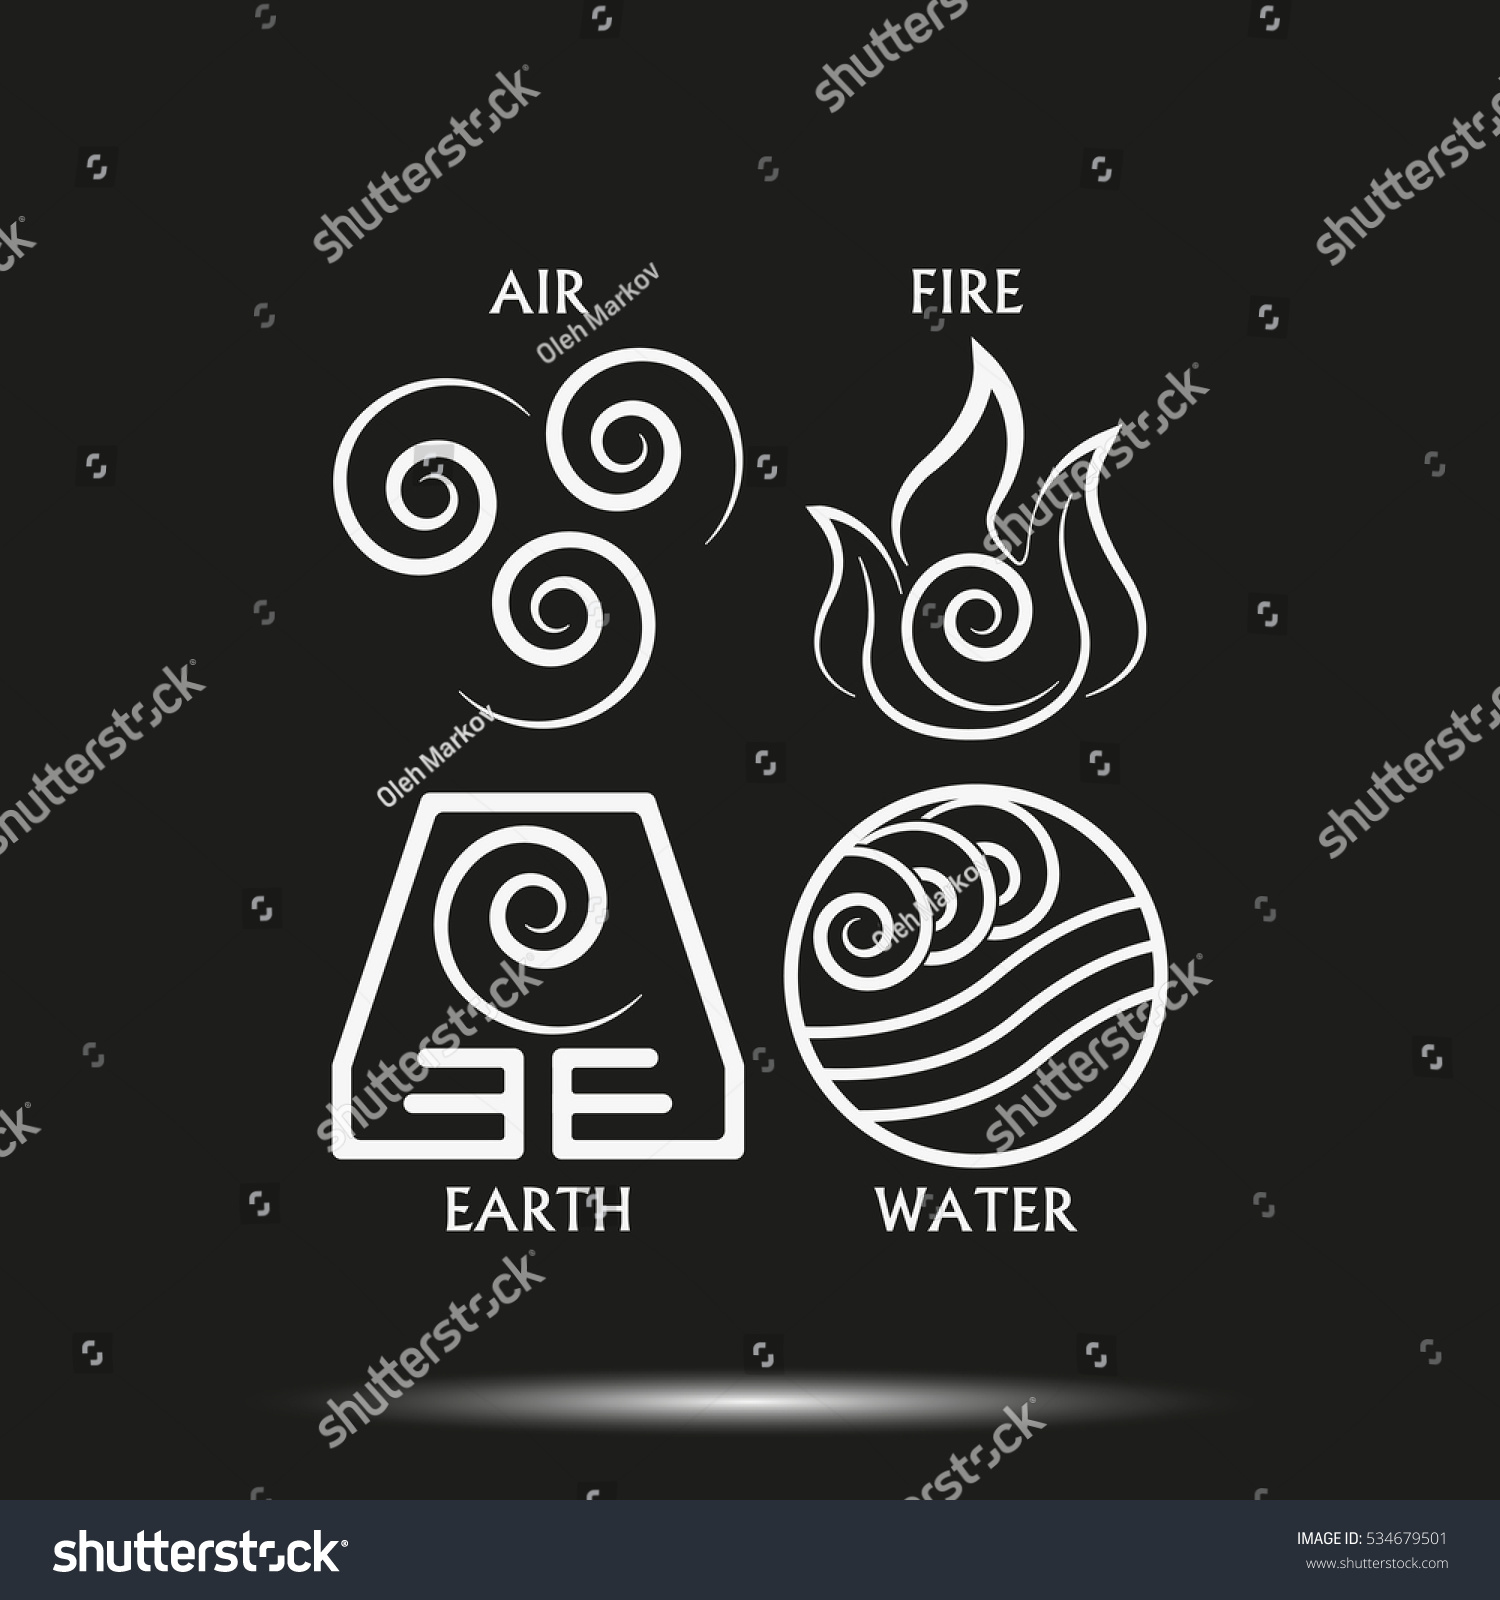 Ancient symbols four elements subscribe vector stock vector ancient symbols of four elements with subscribe vector icon isolated on black background buycottarizona Images